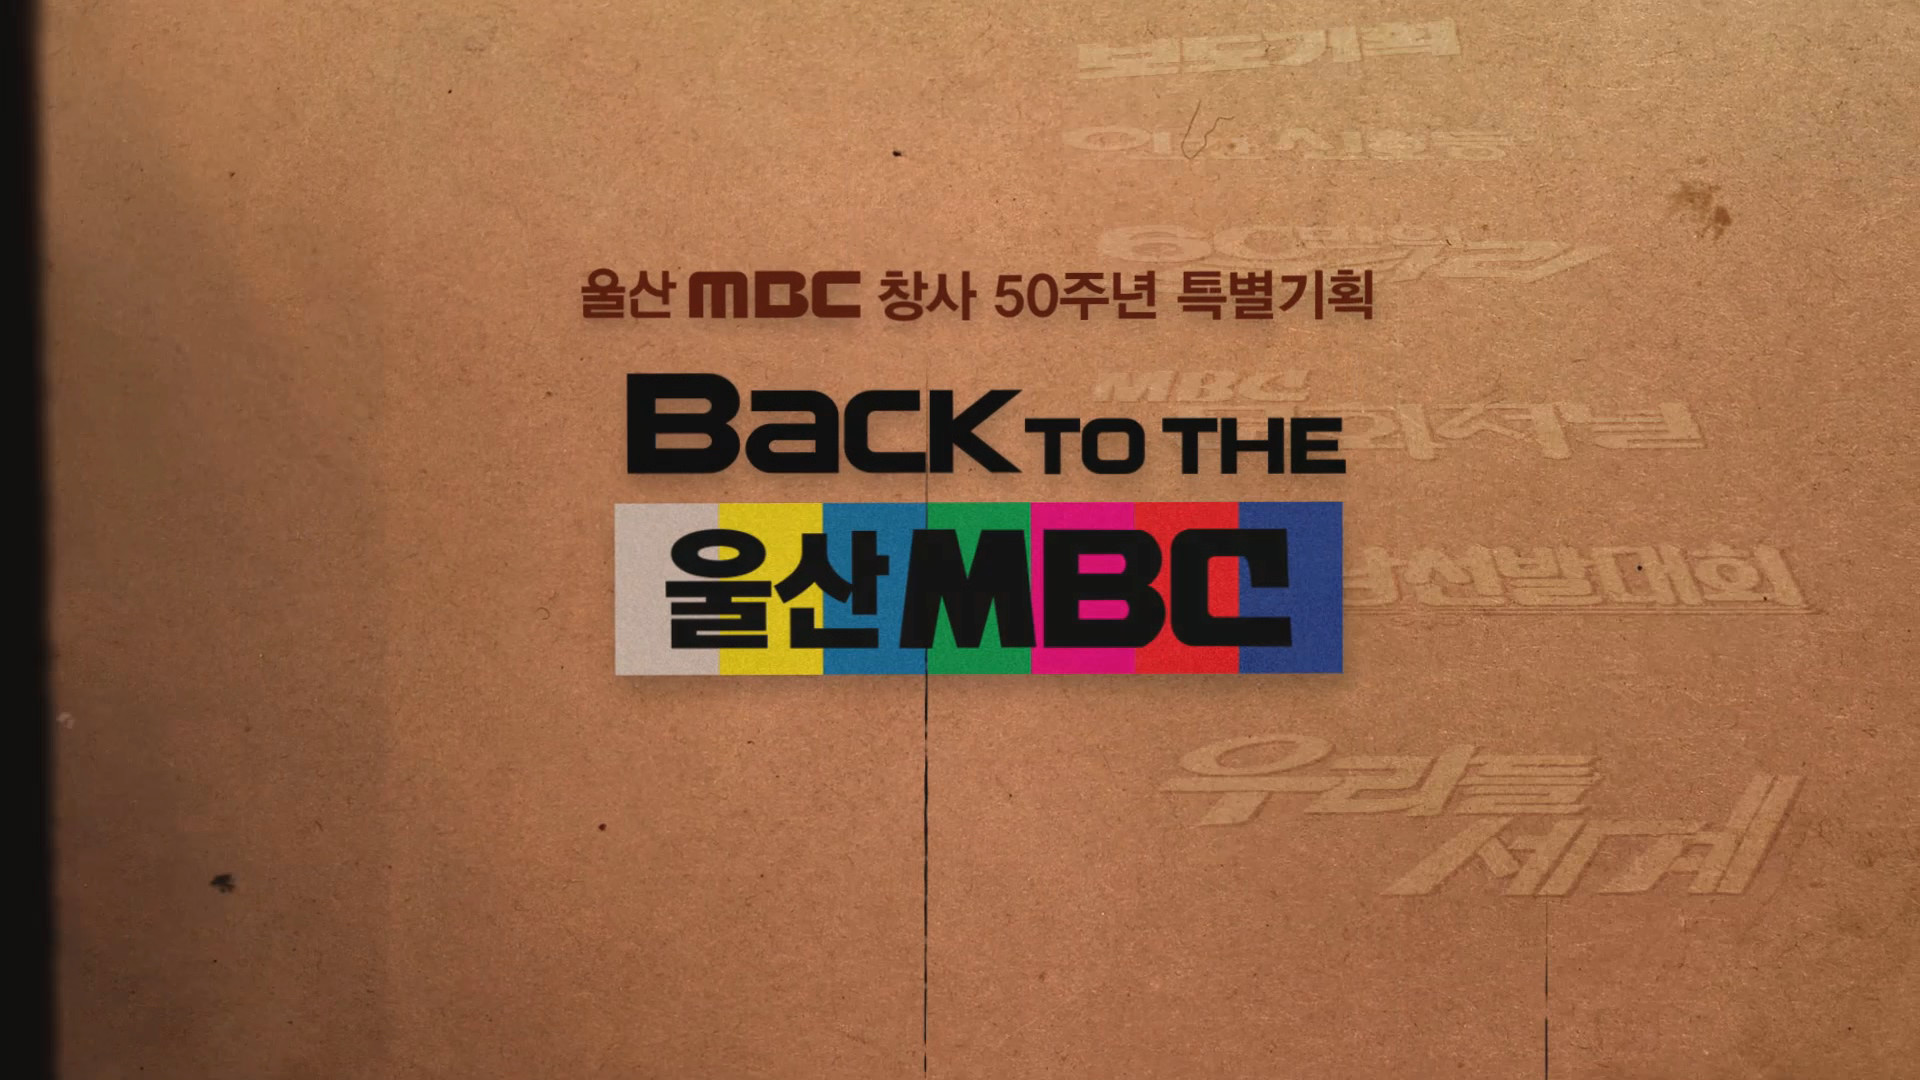 BACK TO THE 울산MBC 다시보기